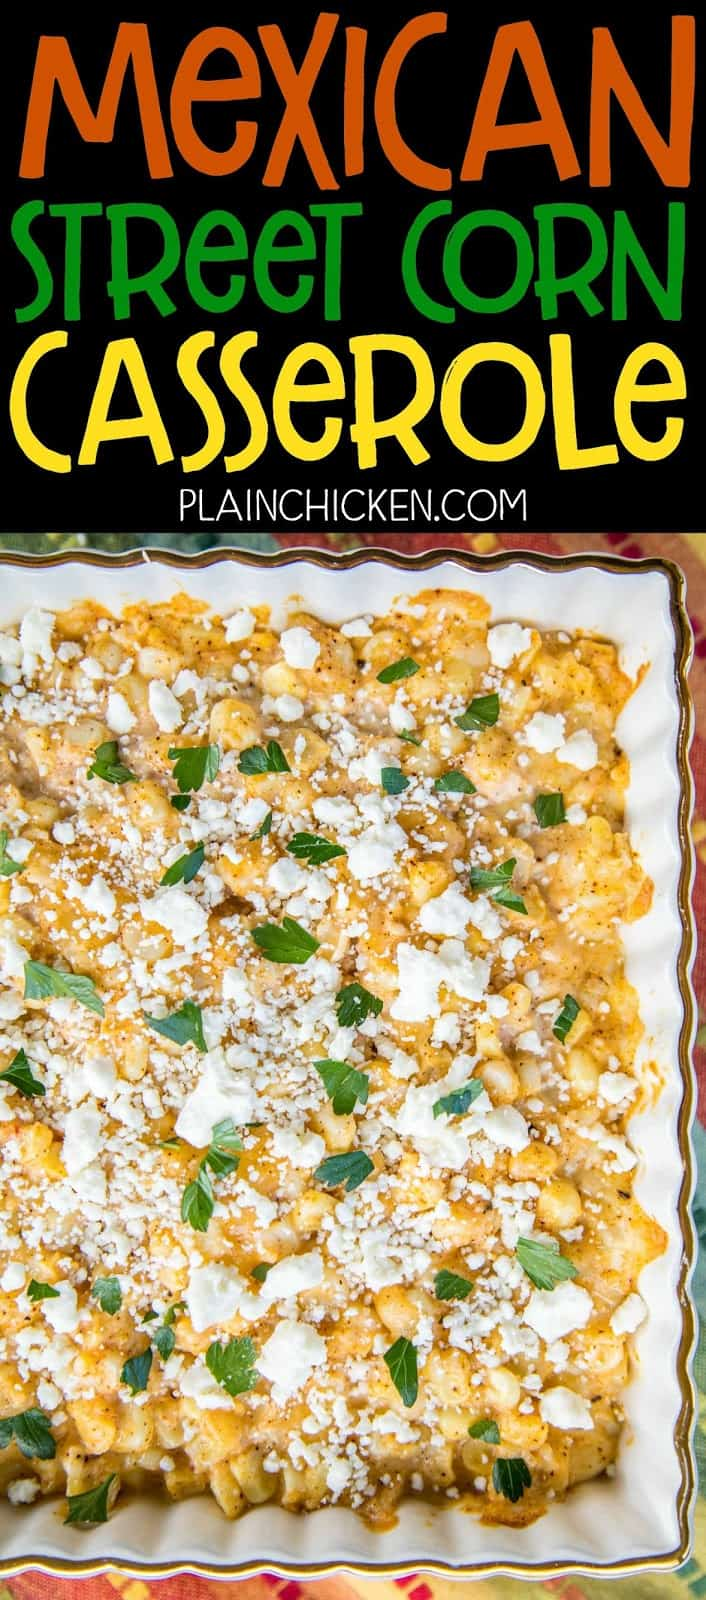 Mexican Street Corn Casserole - all the flavors of Mexican street corn but requires no flossing after eating! Corn, mayonnaise, sour cream, lime, parmesan, pepper jack, chili powder and feta. Can make ahead of time and refrigerate until ready to make. Great for potlucks, cookouts and the holidays! You might want to double the recipe - this doesn't last long!